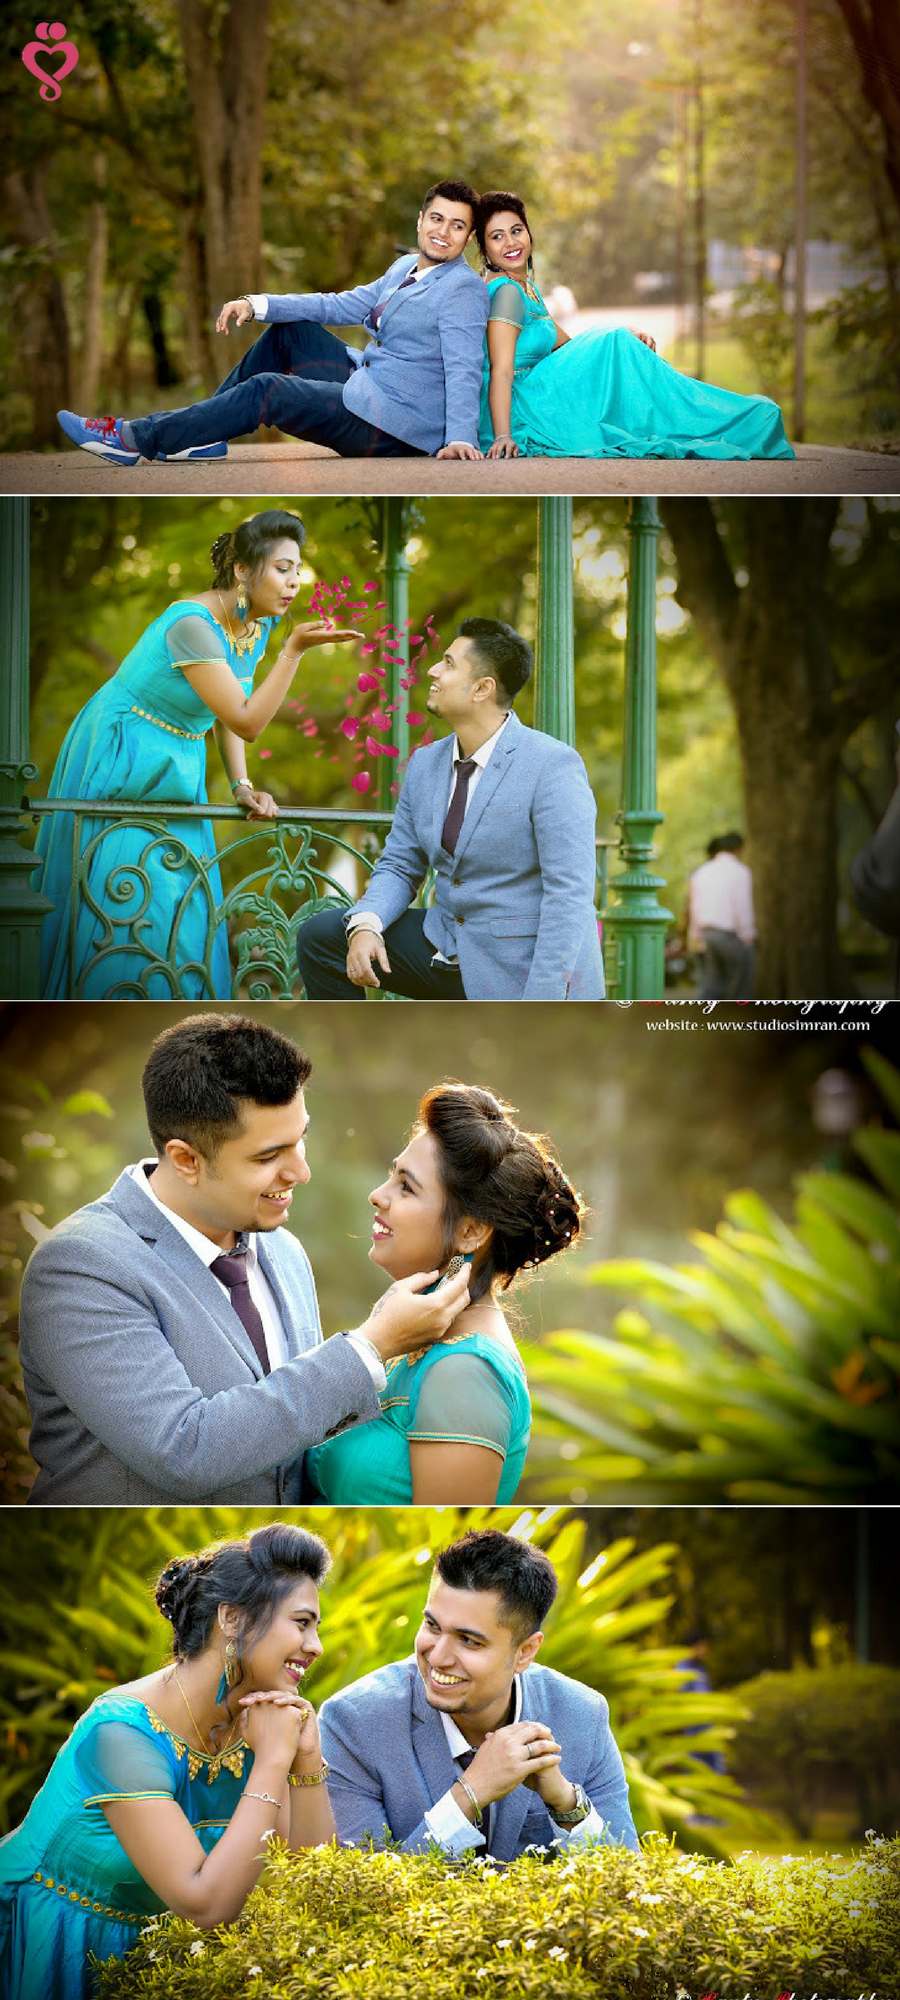 Love Story Shot Bride And Groom In A Nice Outfits Best Locations Weddingnet Wedd Pre Wedding Photoshoot Pre Wedding Poses Indian Wedding Couple Photography